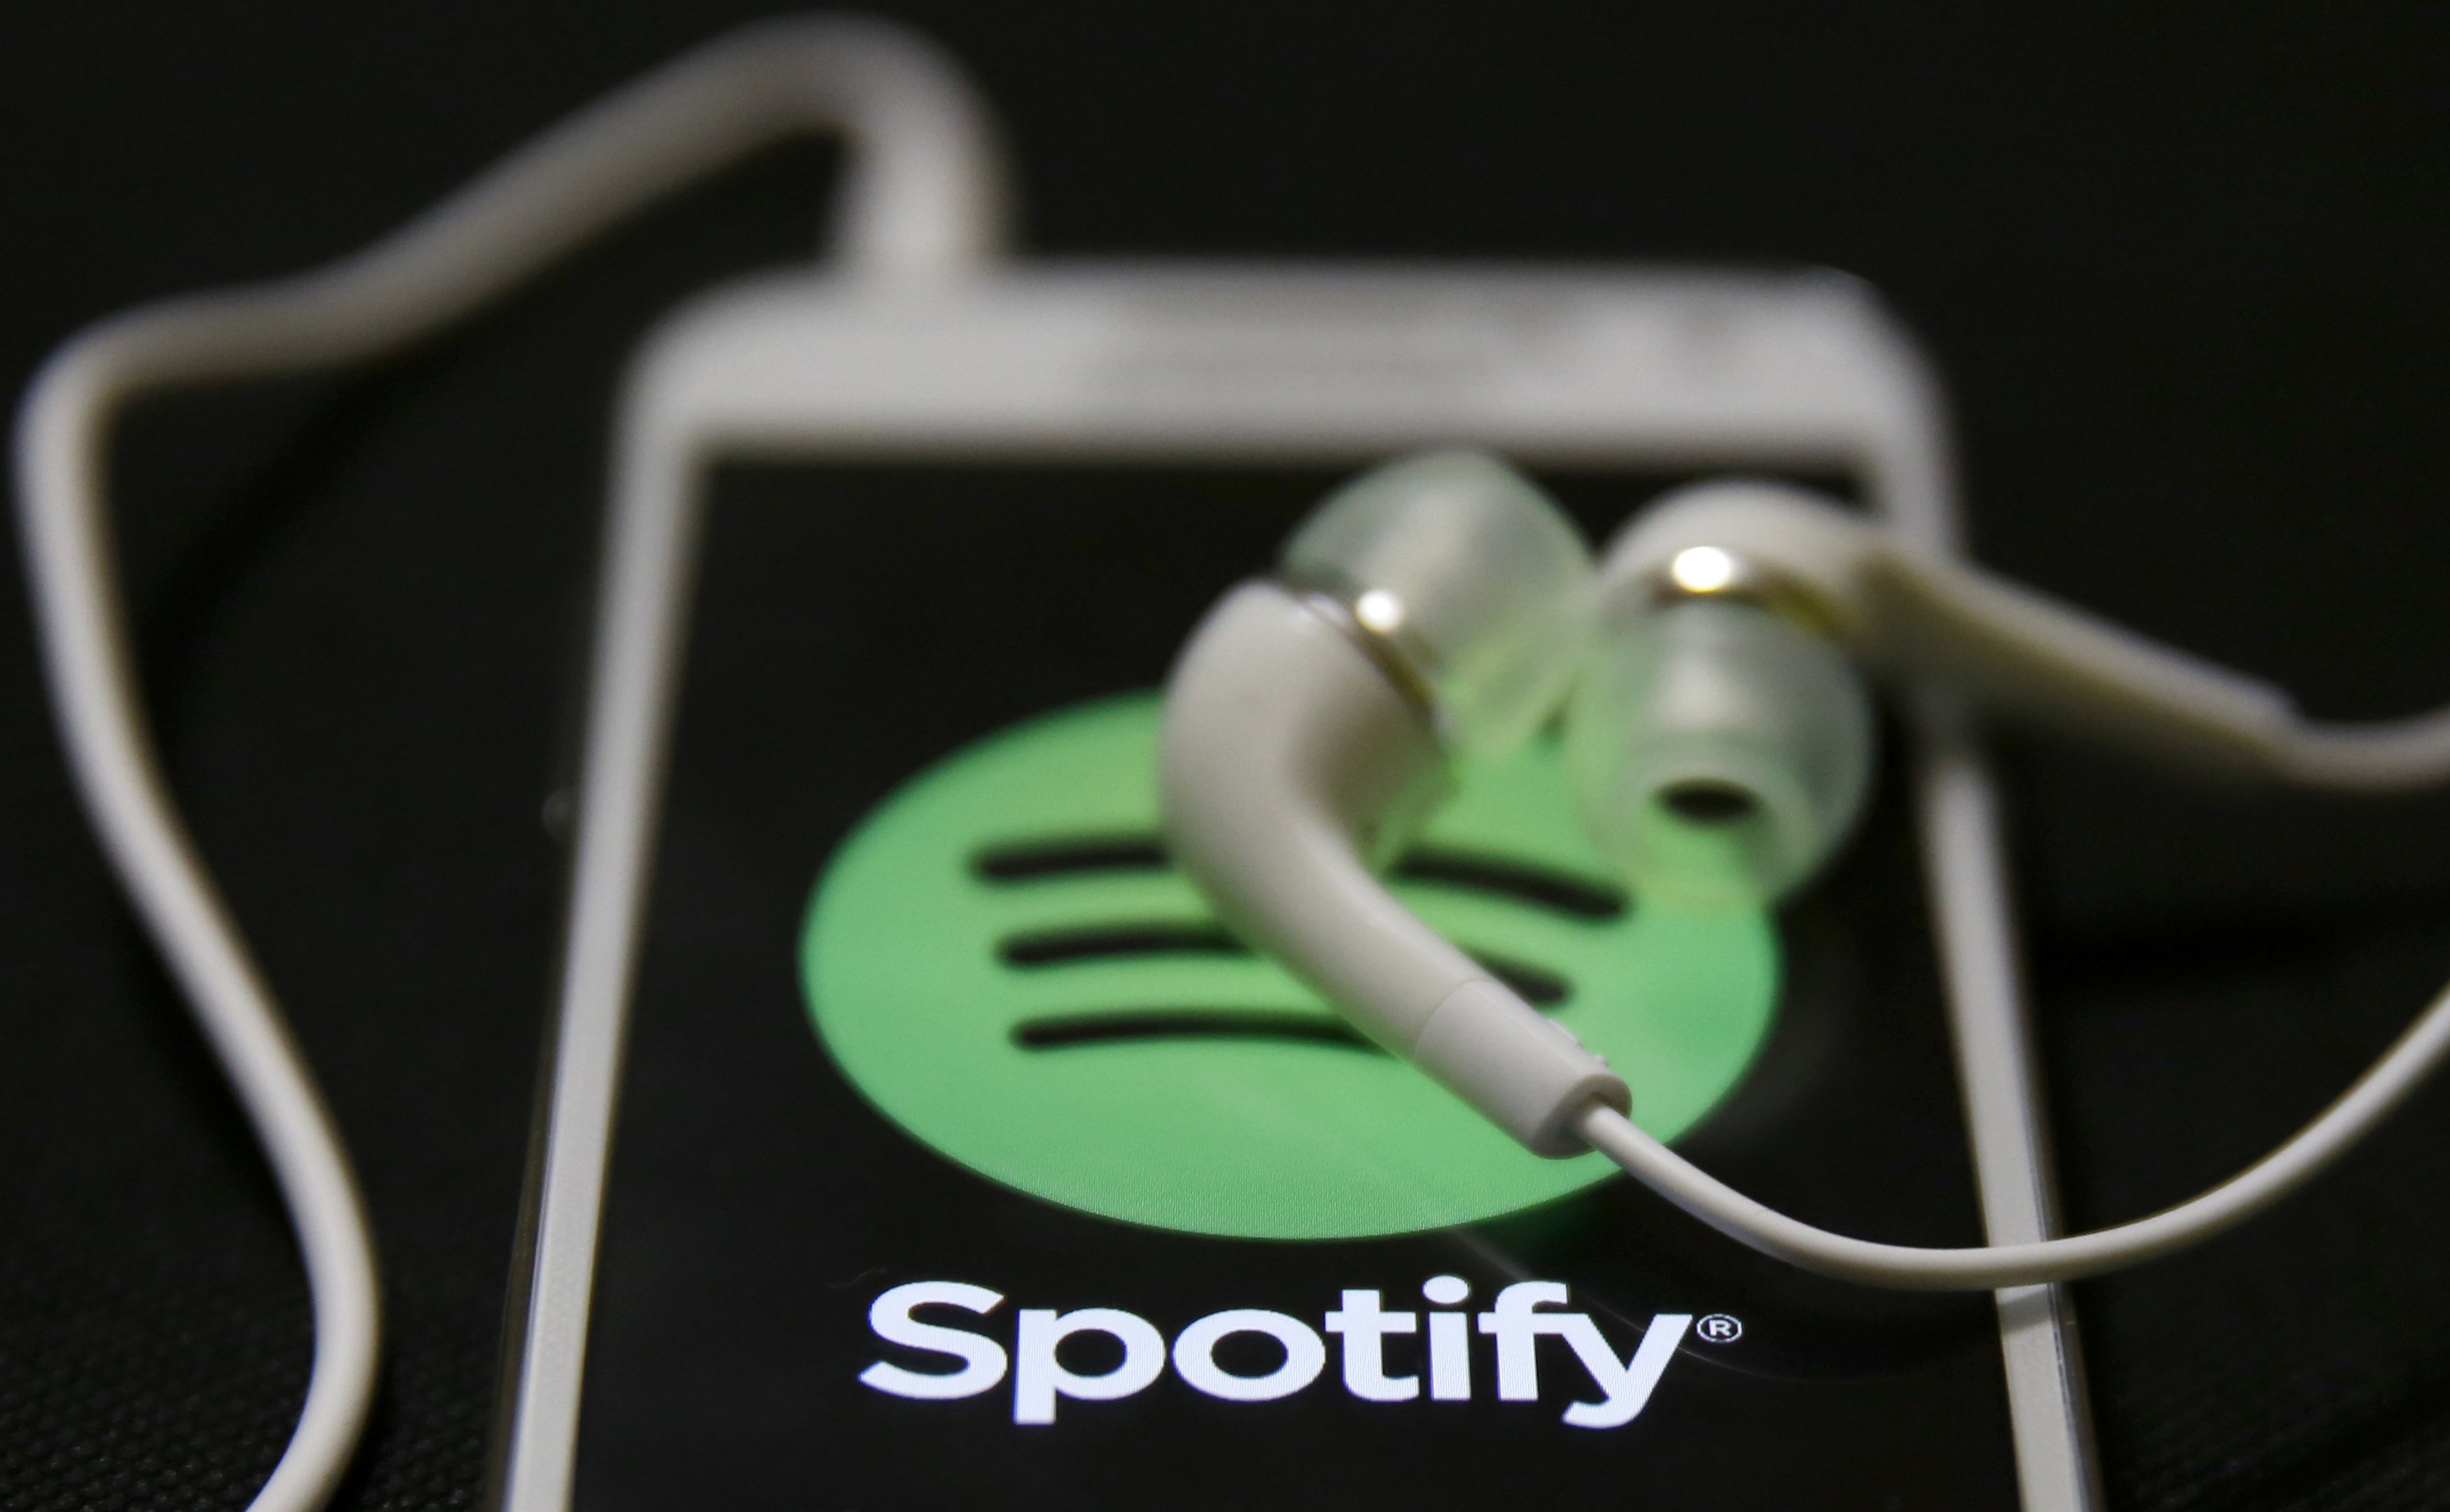 can spotify save the day for pakistani music scene